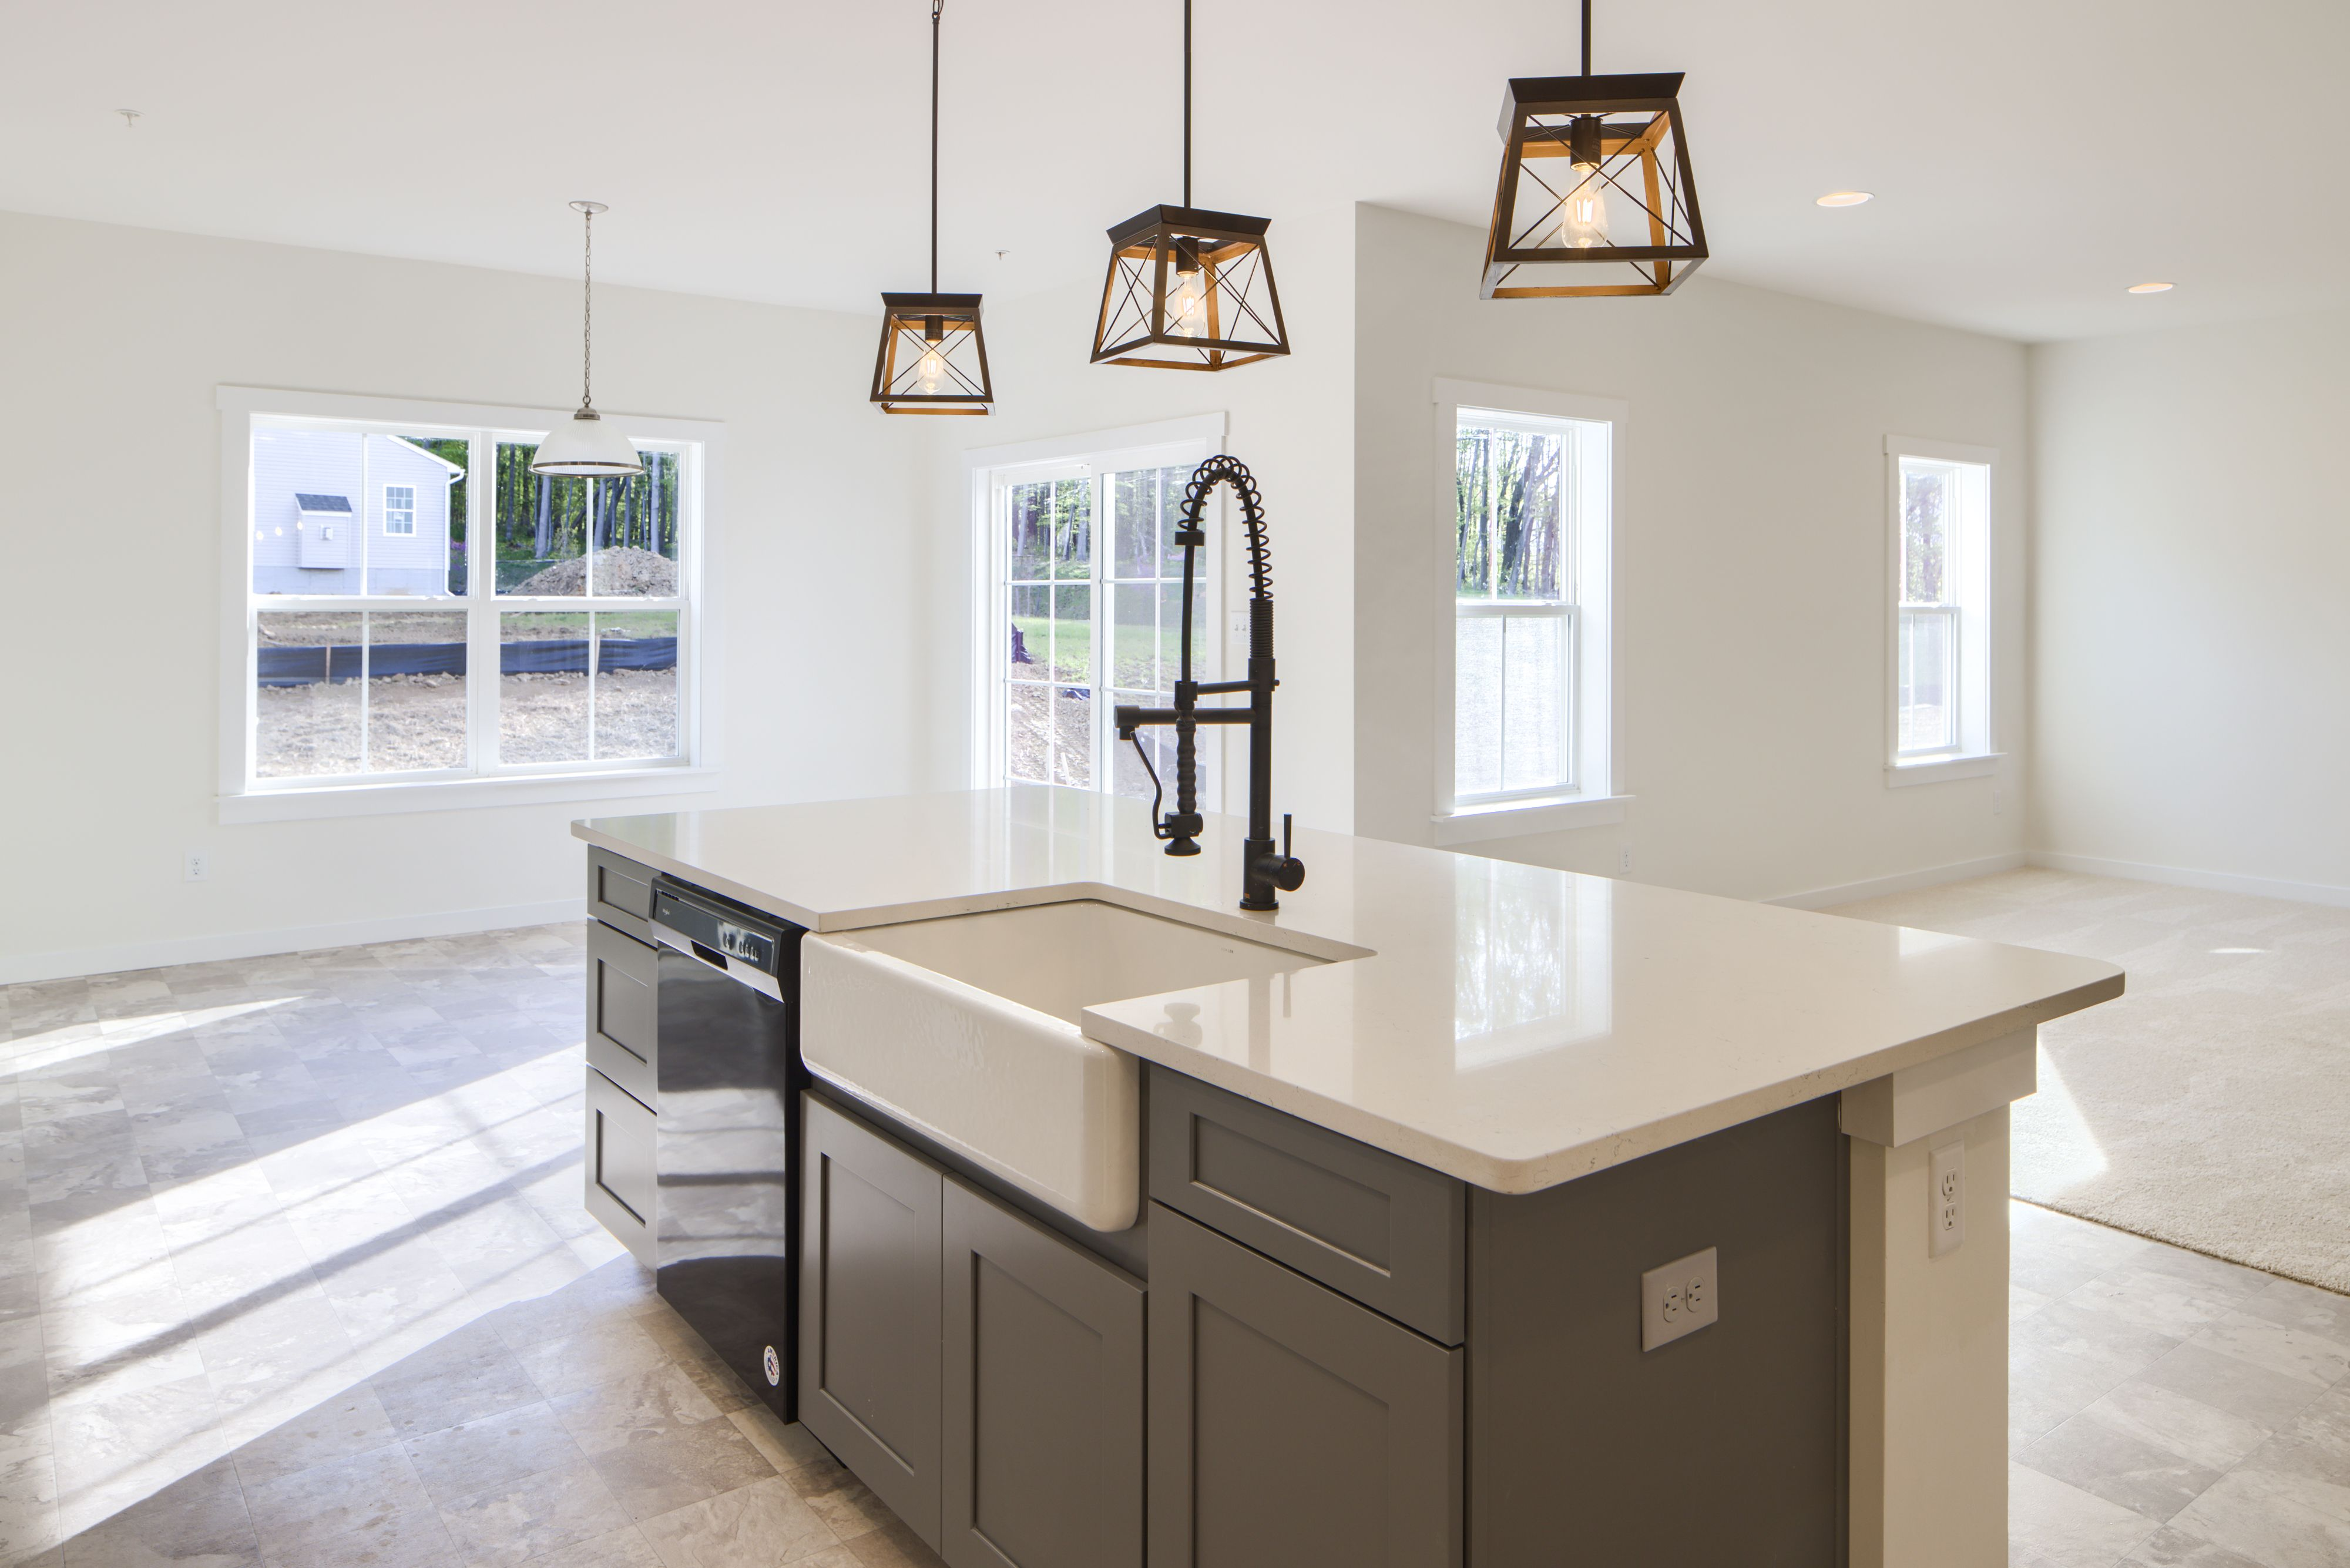 Kitchen featured in the Augusta Normandy By Keystone Custom Homes in Washington, MD